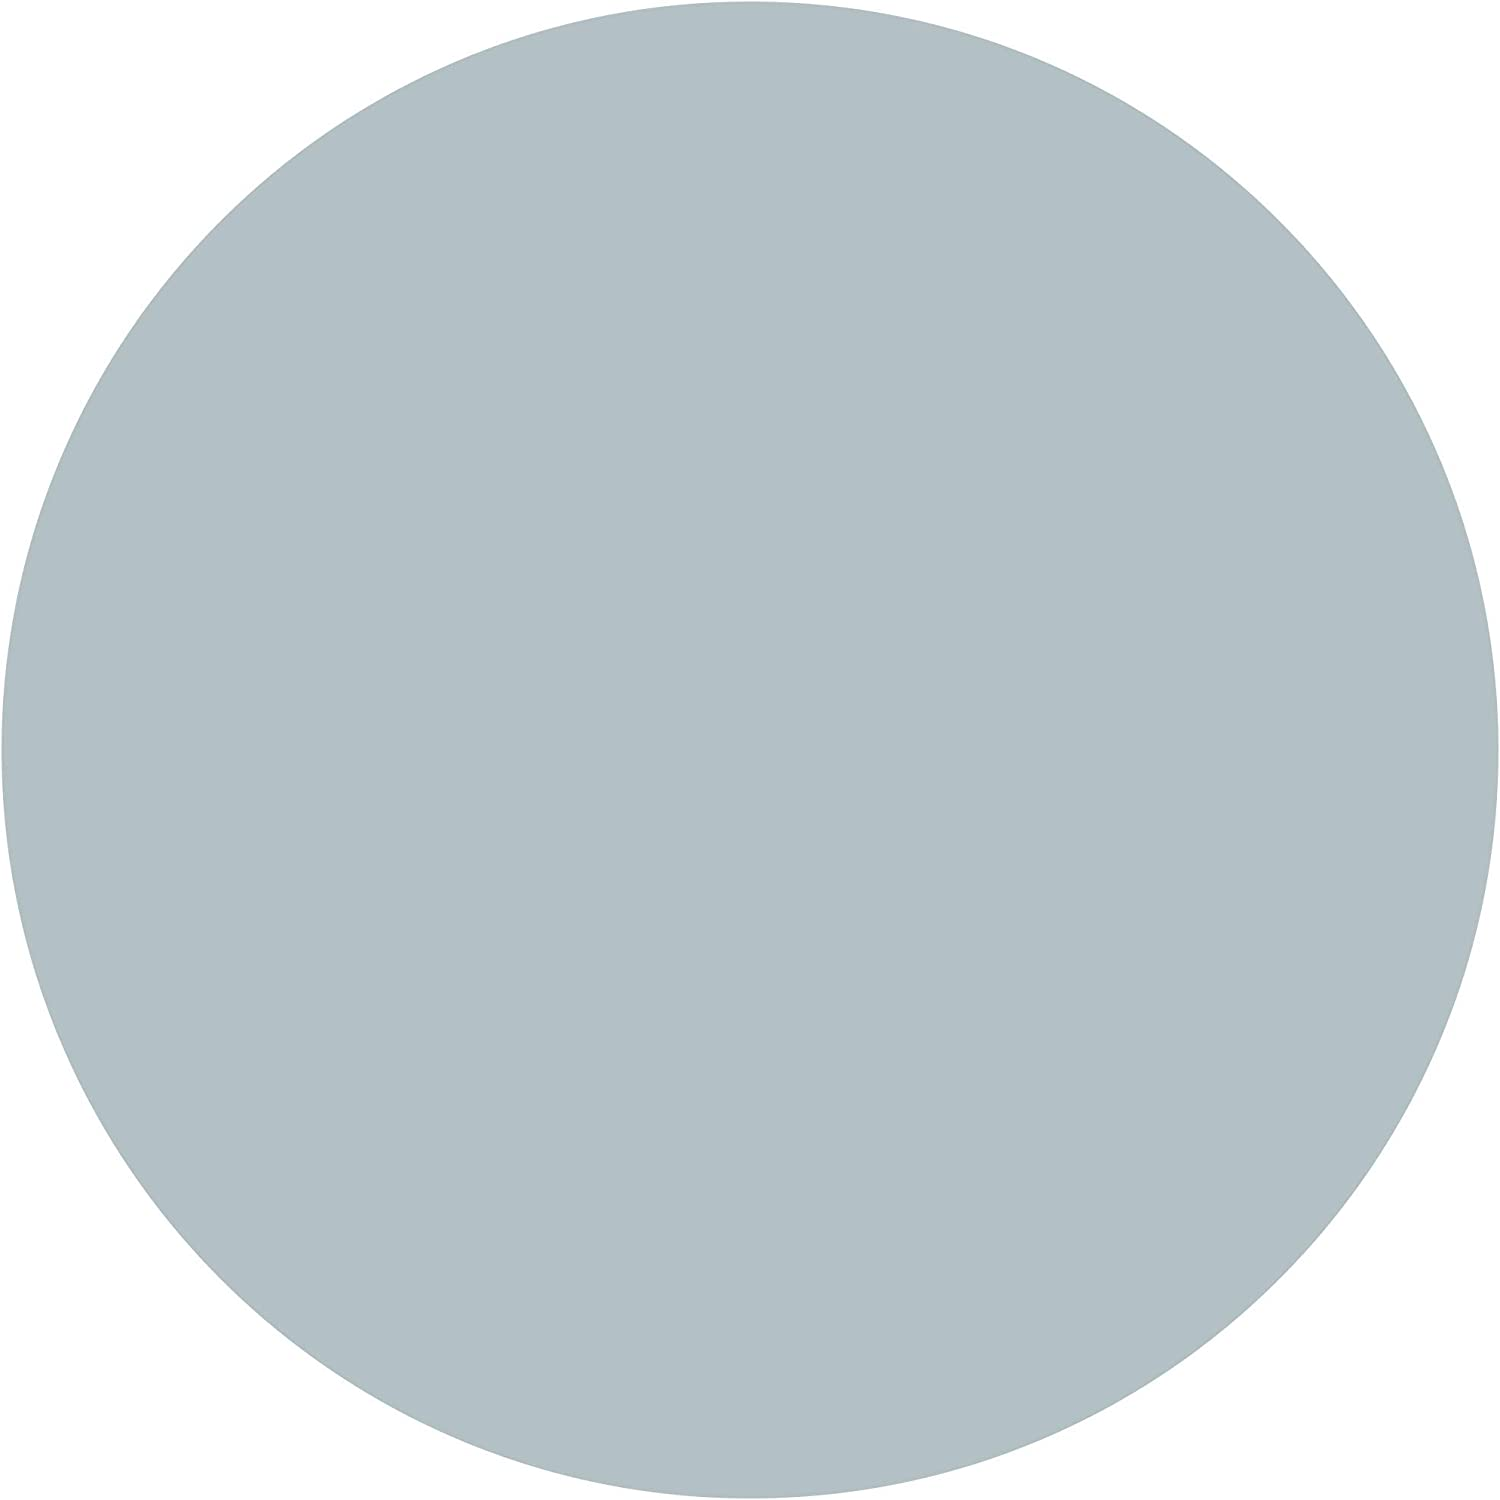 Duck Egg Blue Hemway chalk based furniture paint